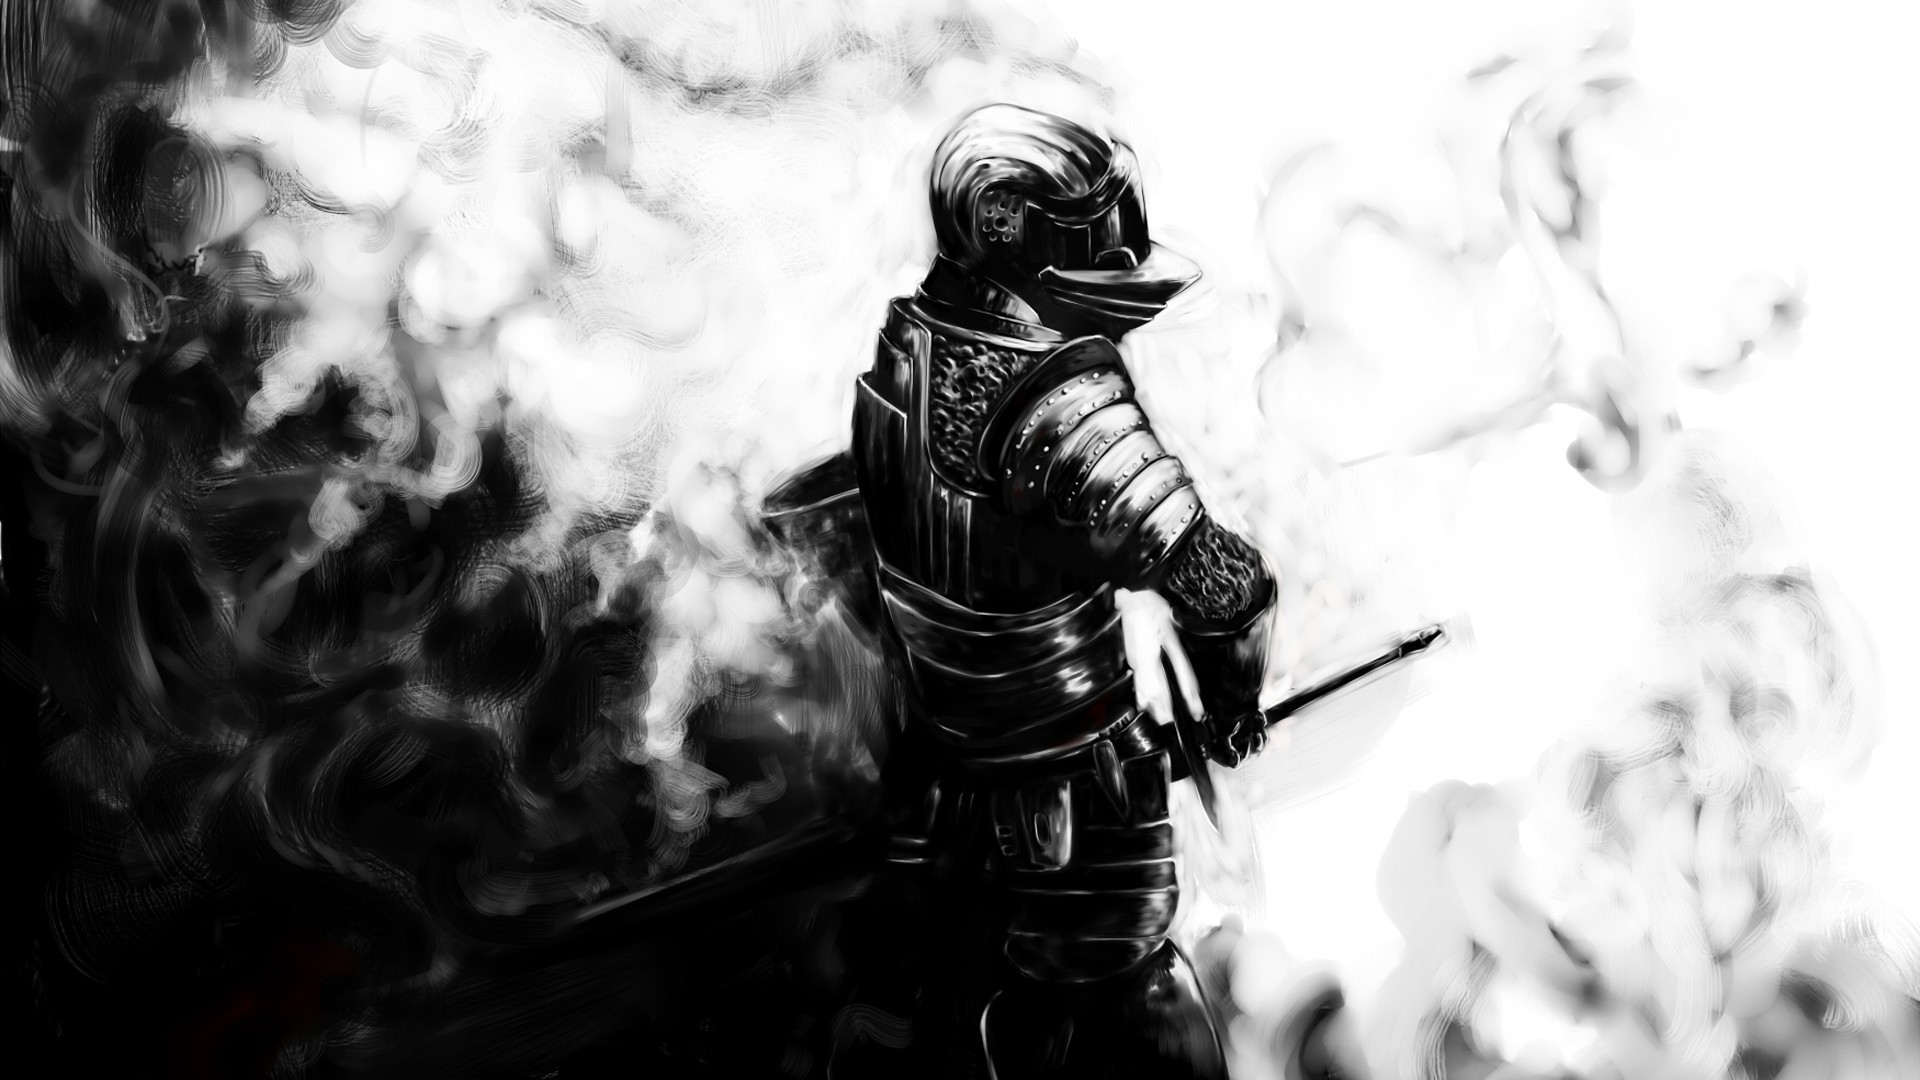 Res: 1920x1080, Demon's Souls HD Wallpapers 17 - 1920 X 1080